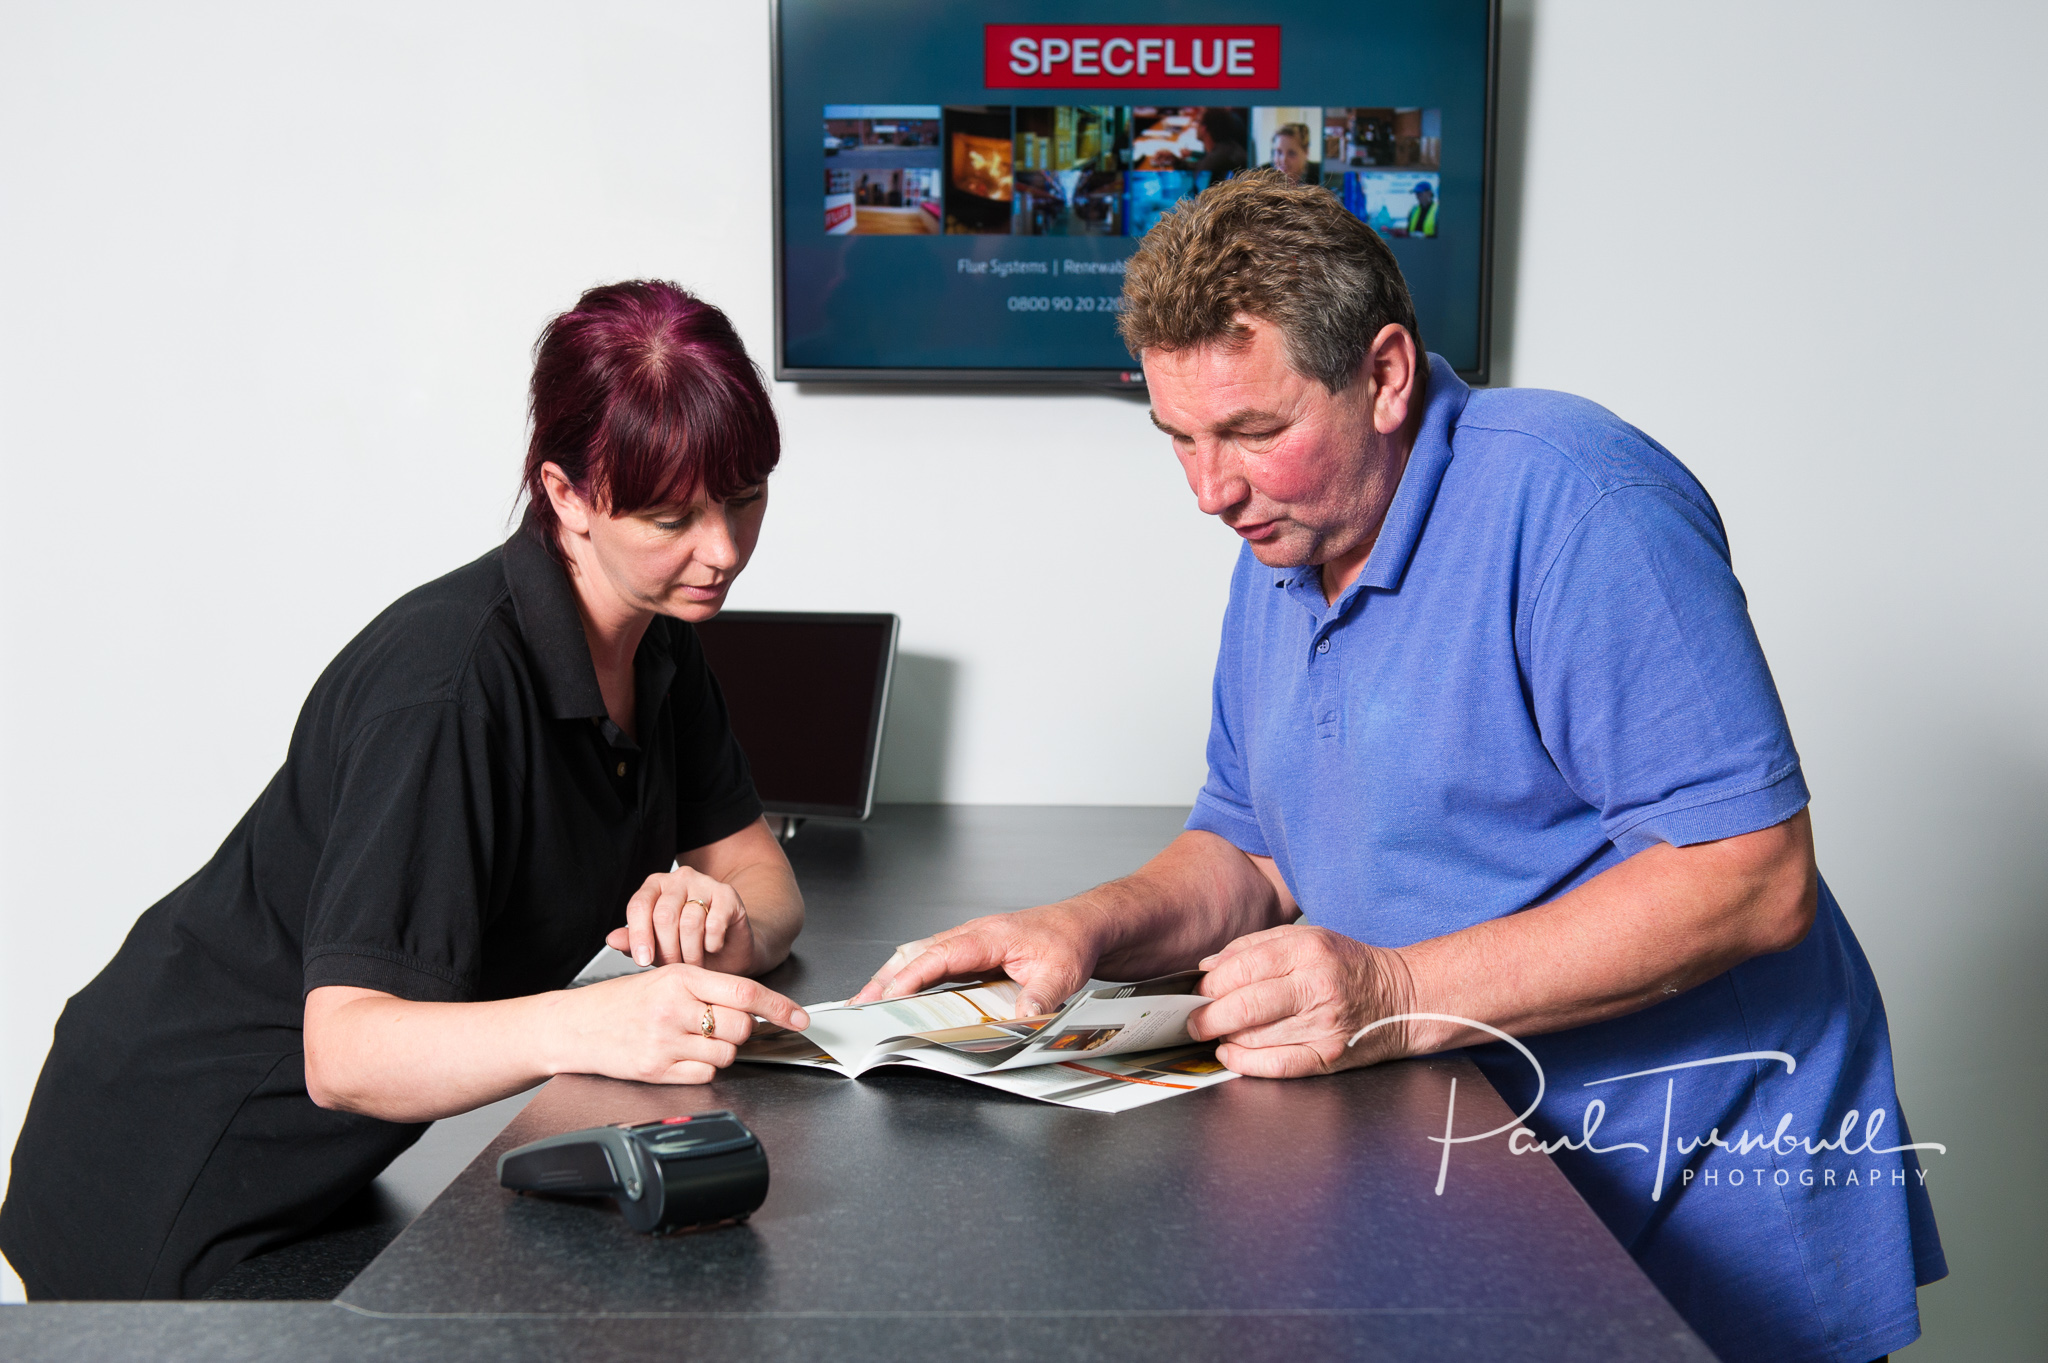 commercial-pr-photographer-leeds-yorkshire-specflue-012.jpg